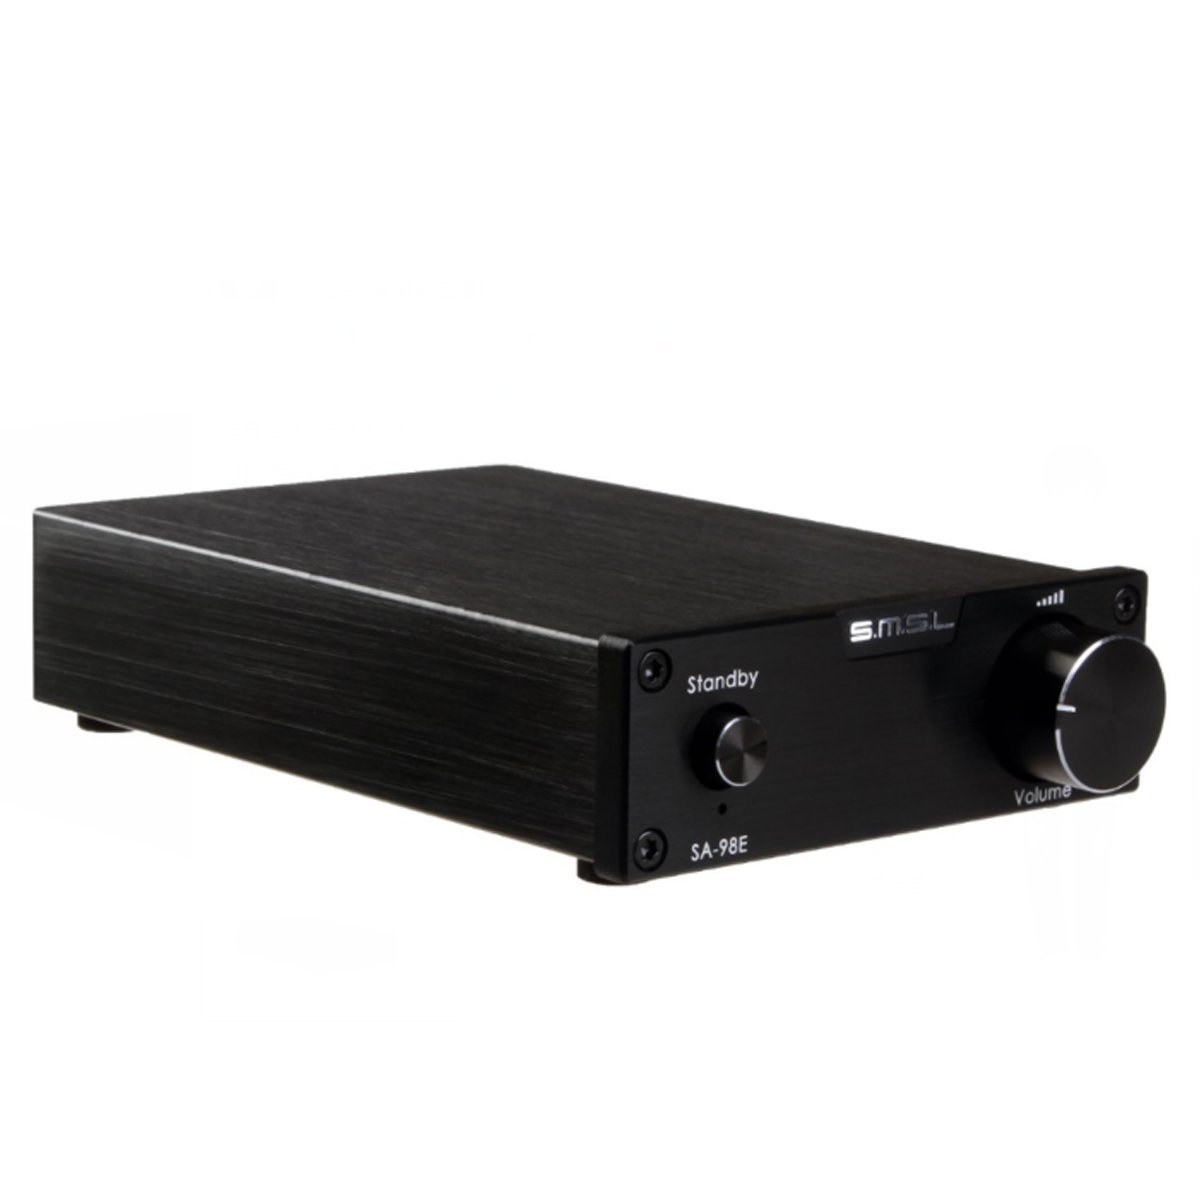 SMSL SA-98E 2 160W TDA7498E amplifier stereo digital amplifier + power adapter,TOP HIFI (black) by SMSL